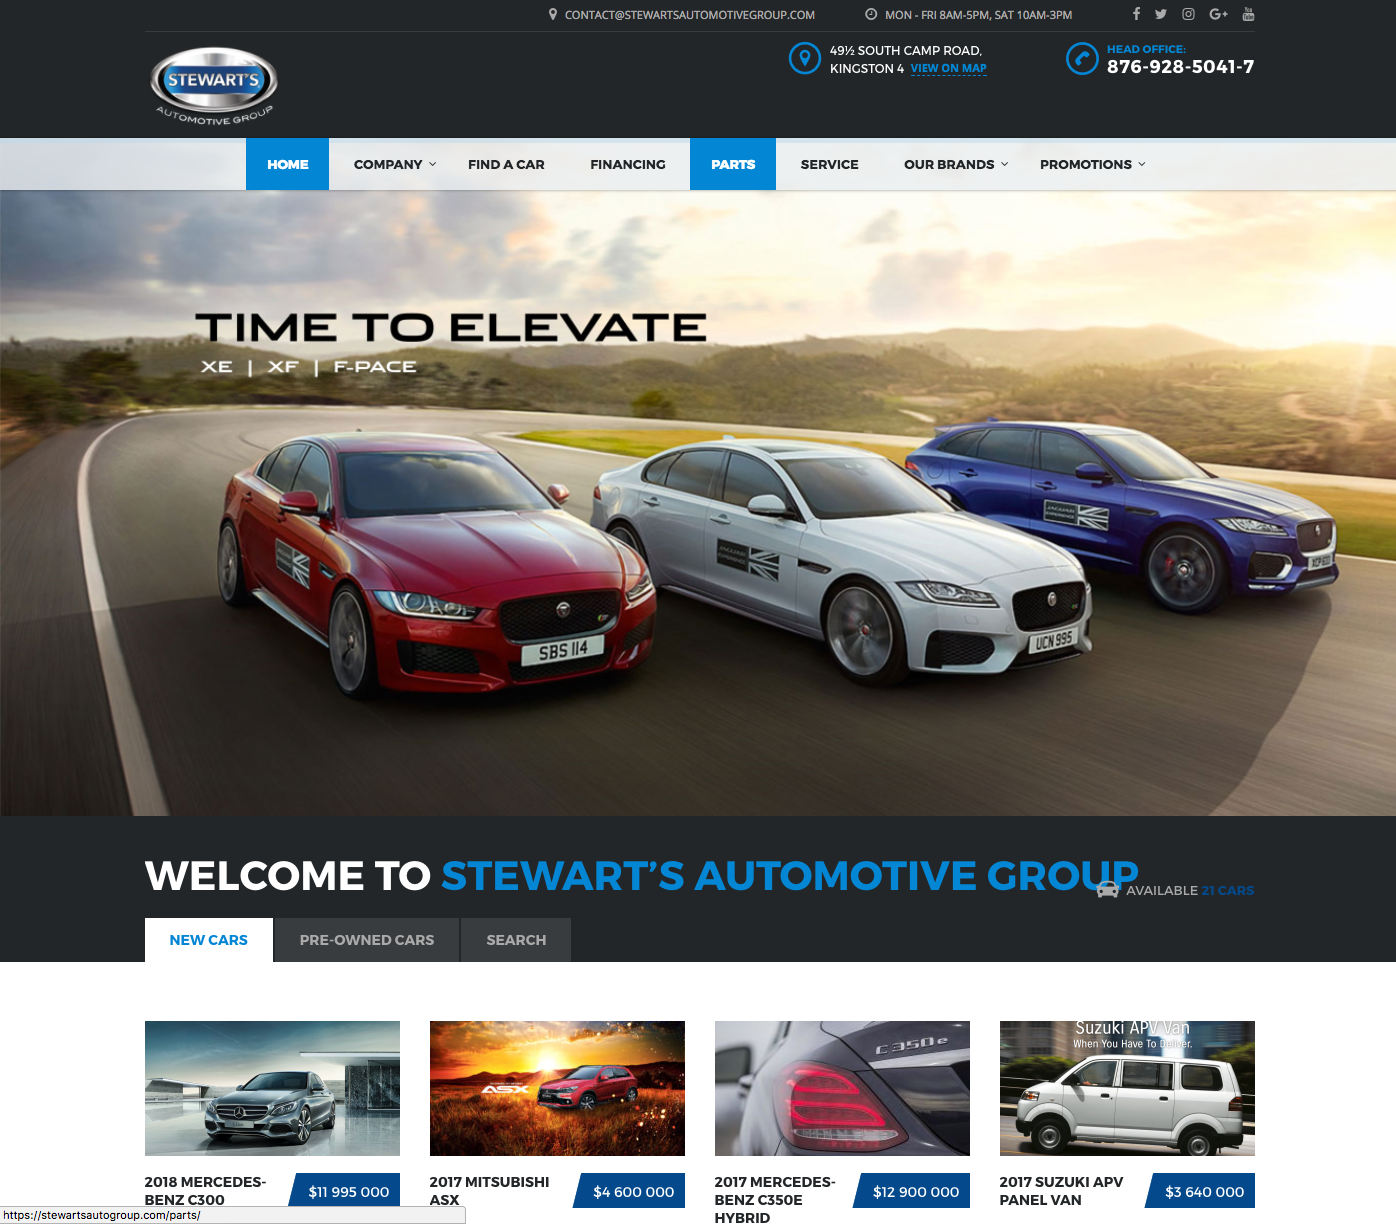 Stewart's Automotive Group